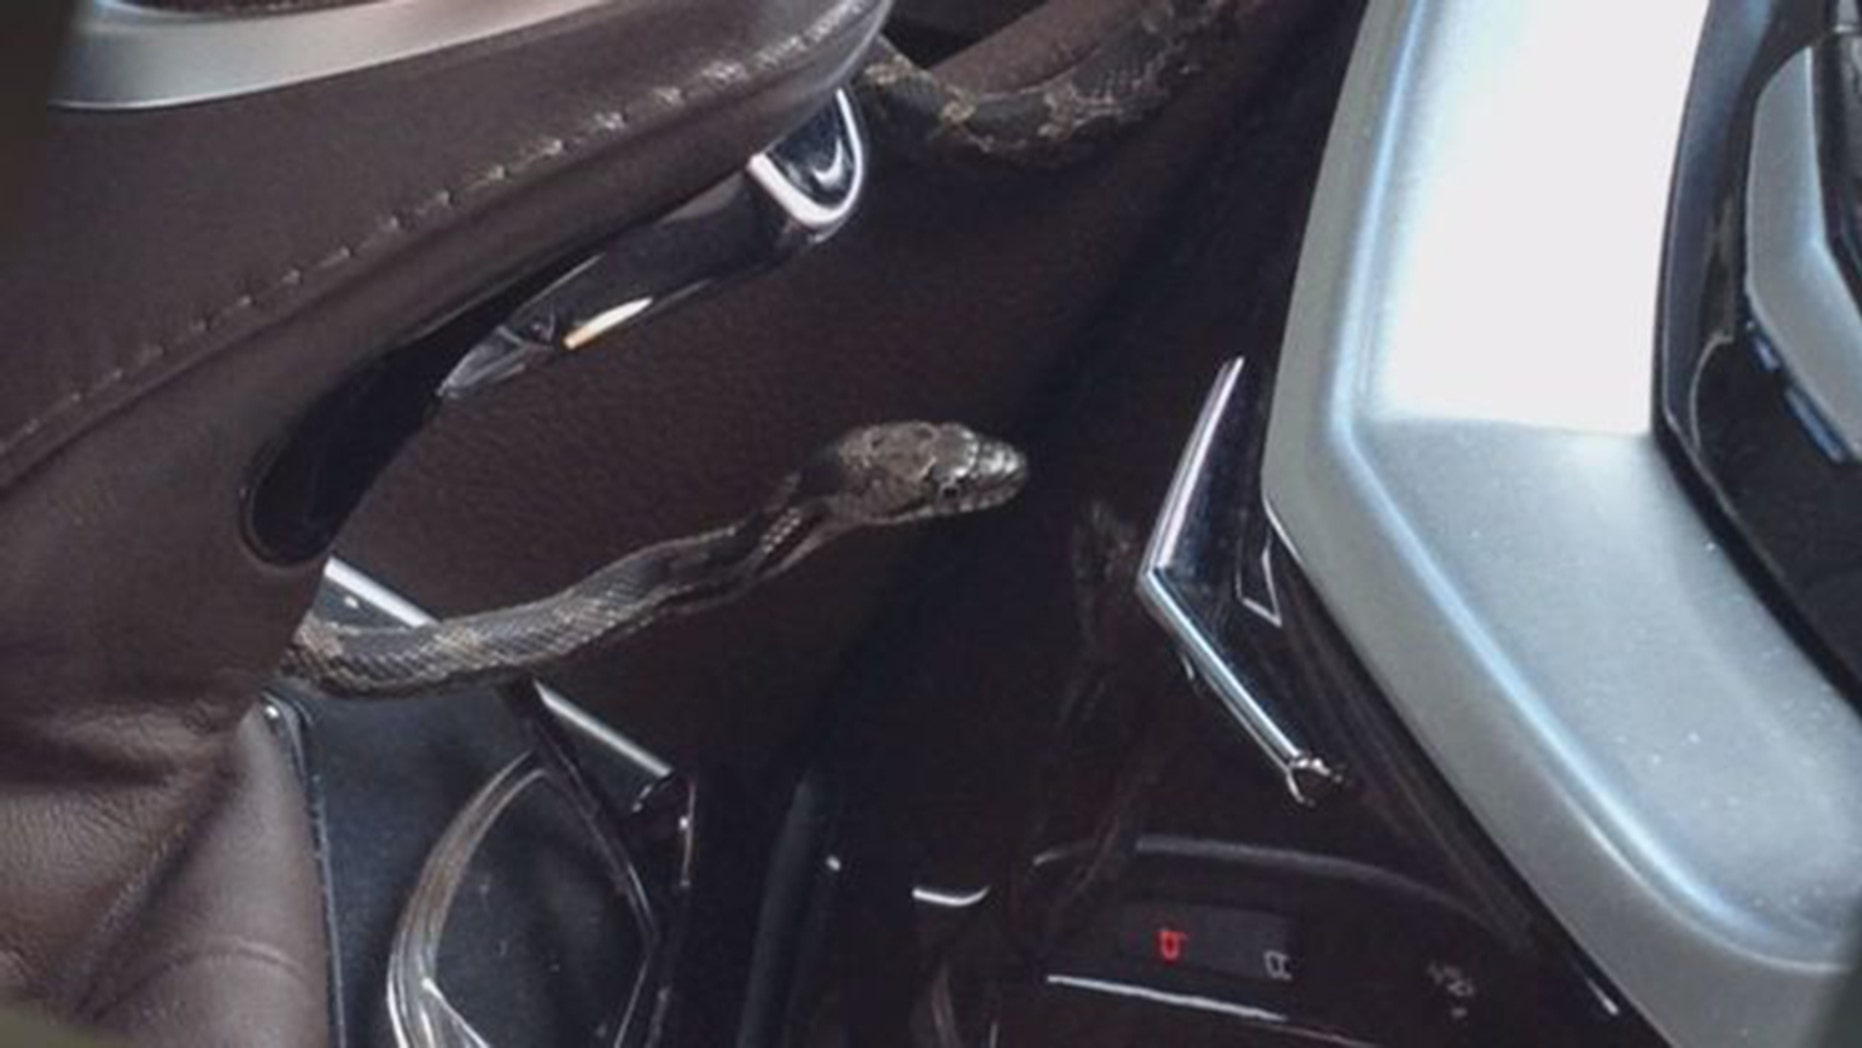 The garden snake appeared from her car's air vent while she was driving, Fox 5 DC reported.